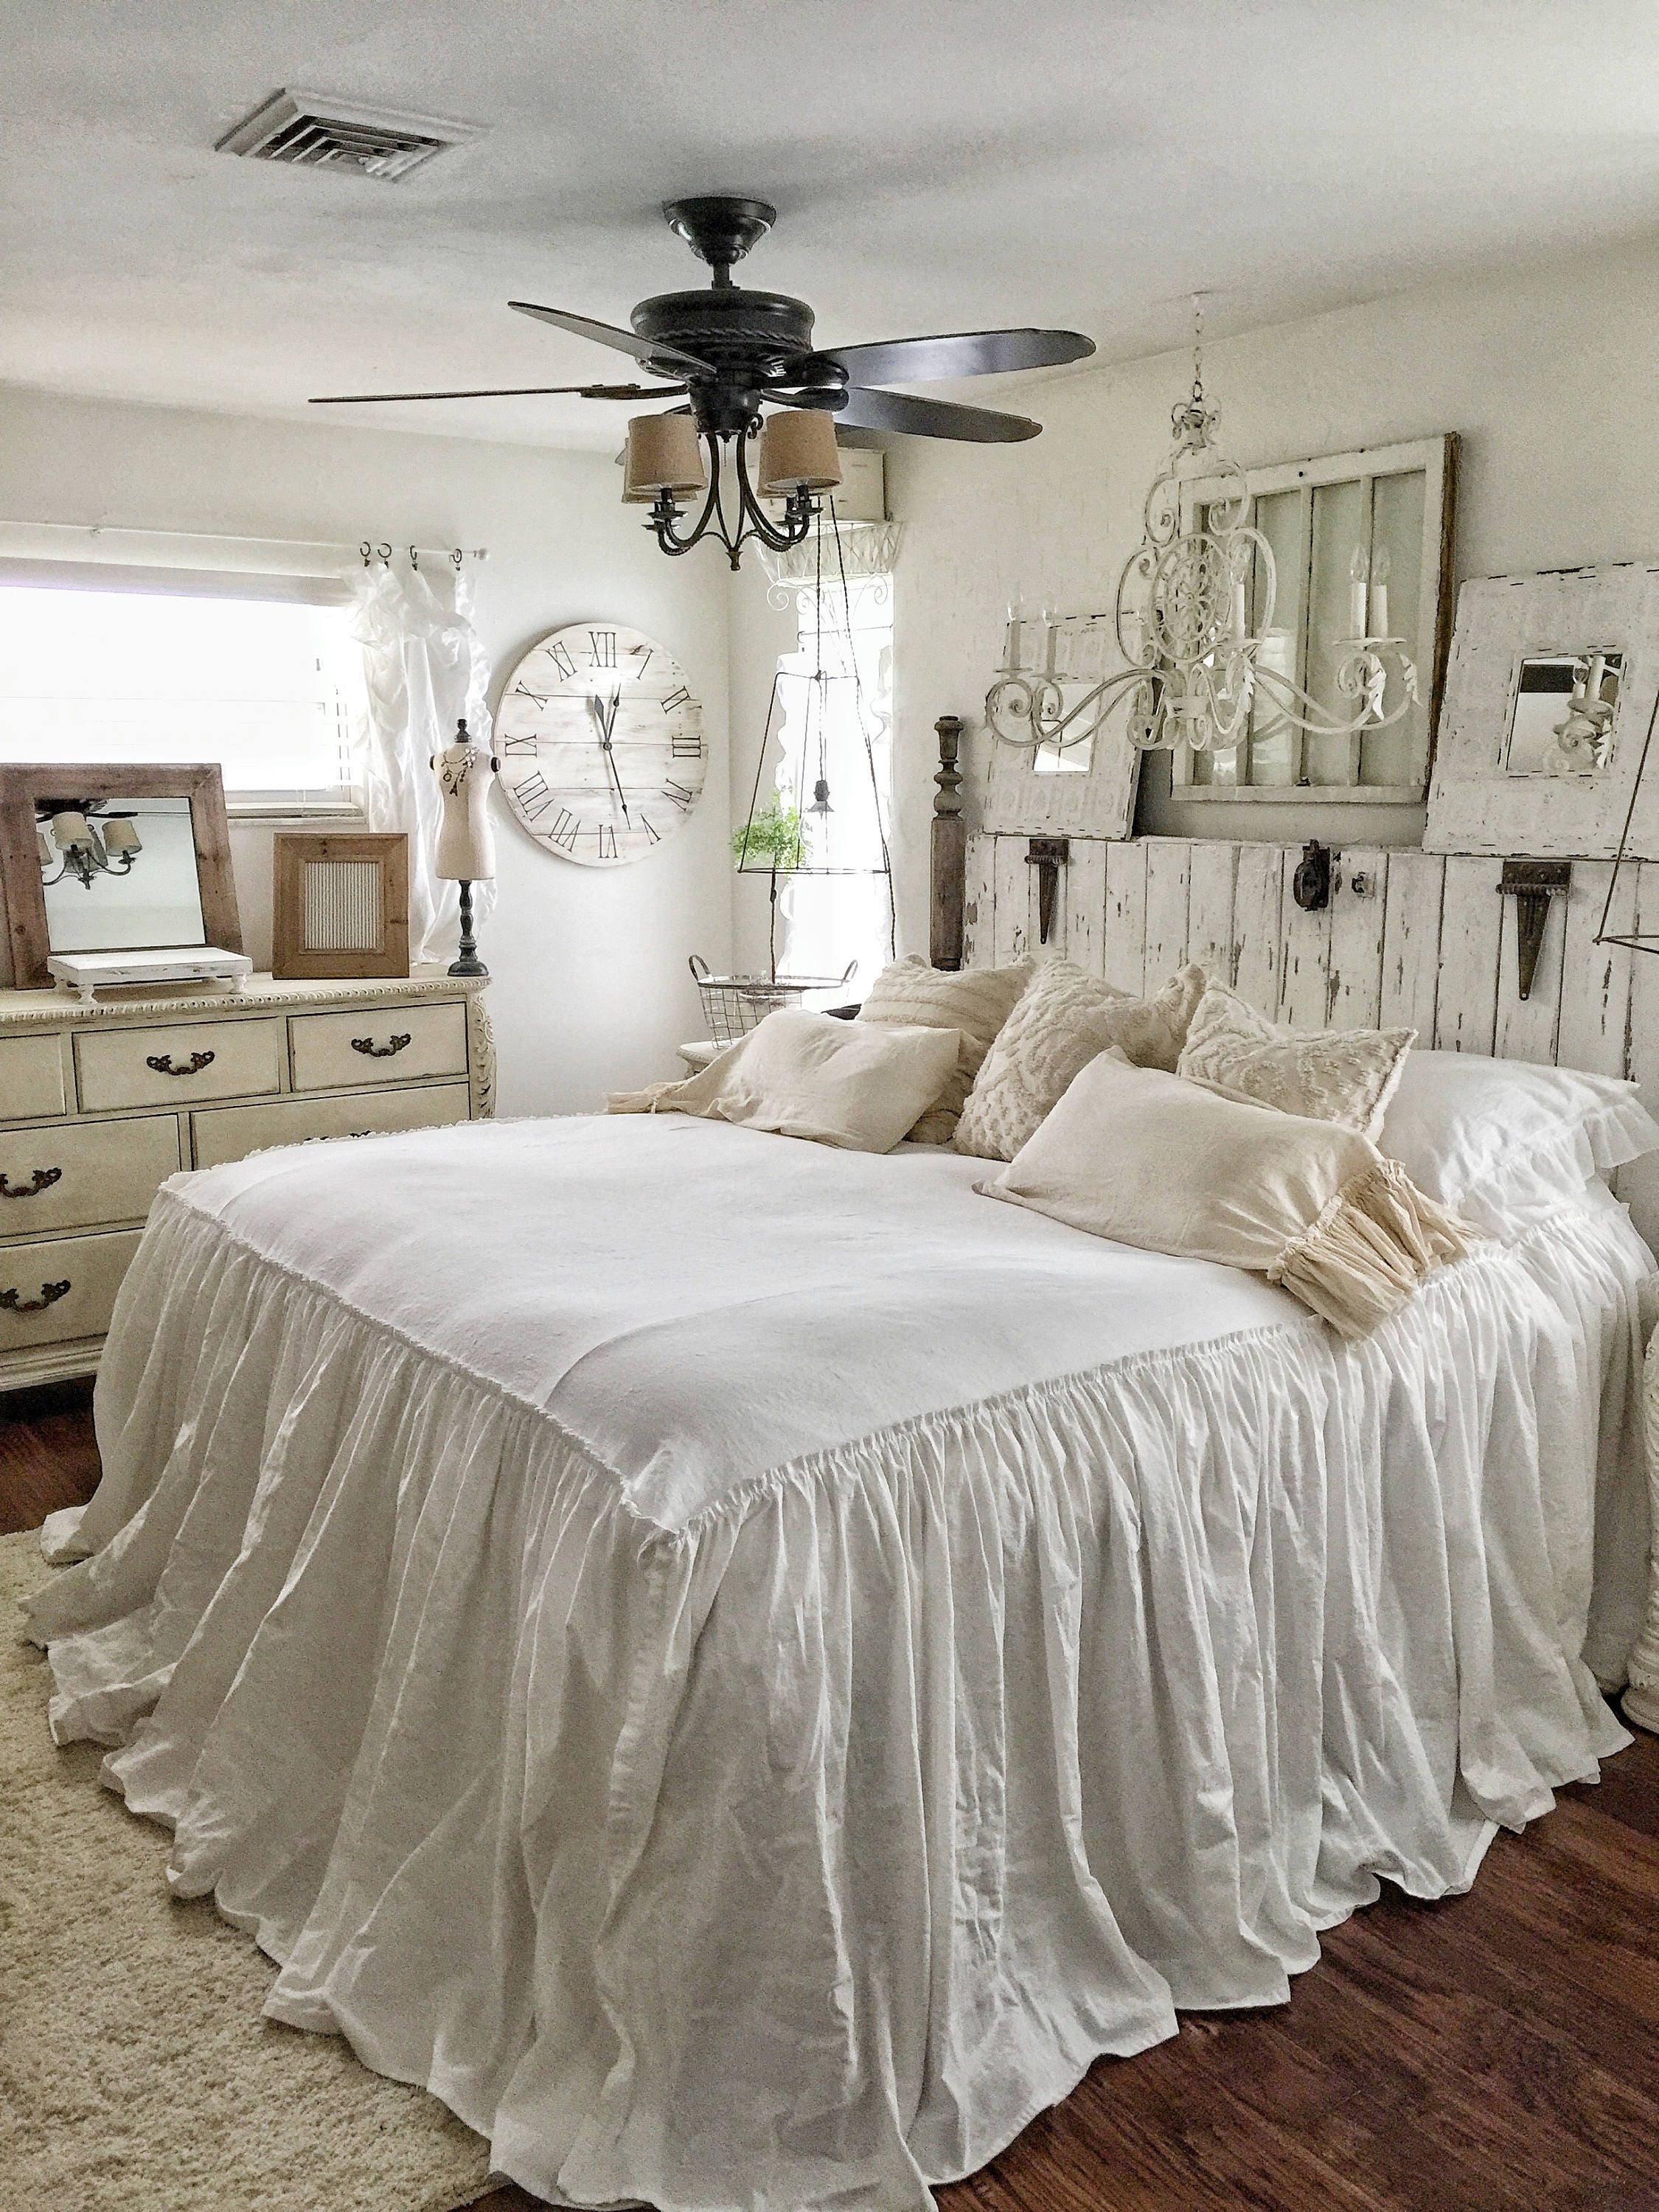 Bed Cover Bedroom Bedroom Bed Covers Nice And Bedroom